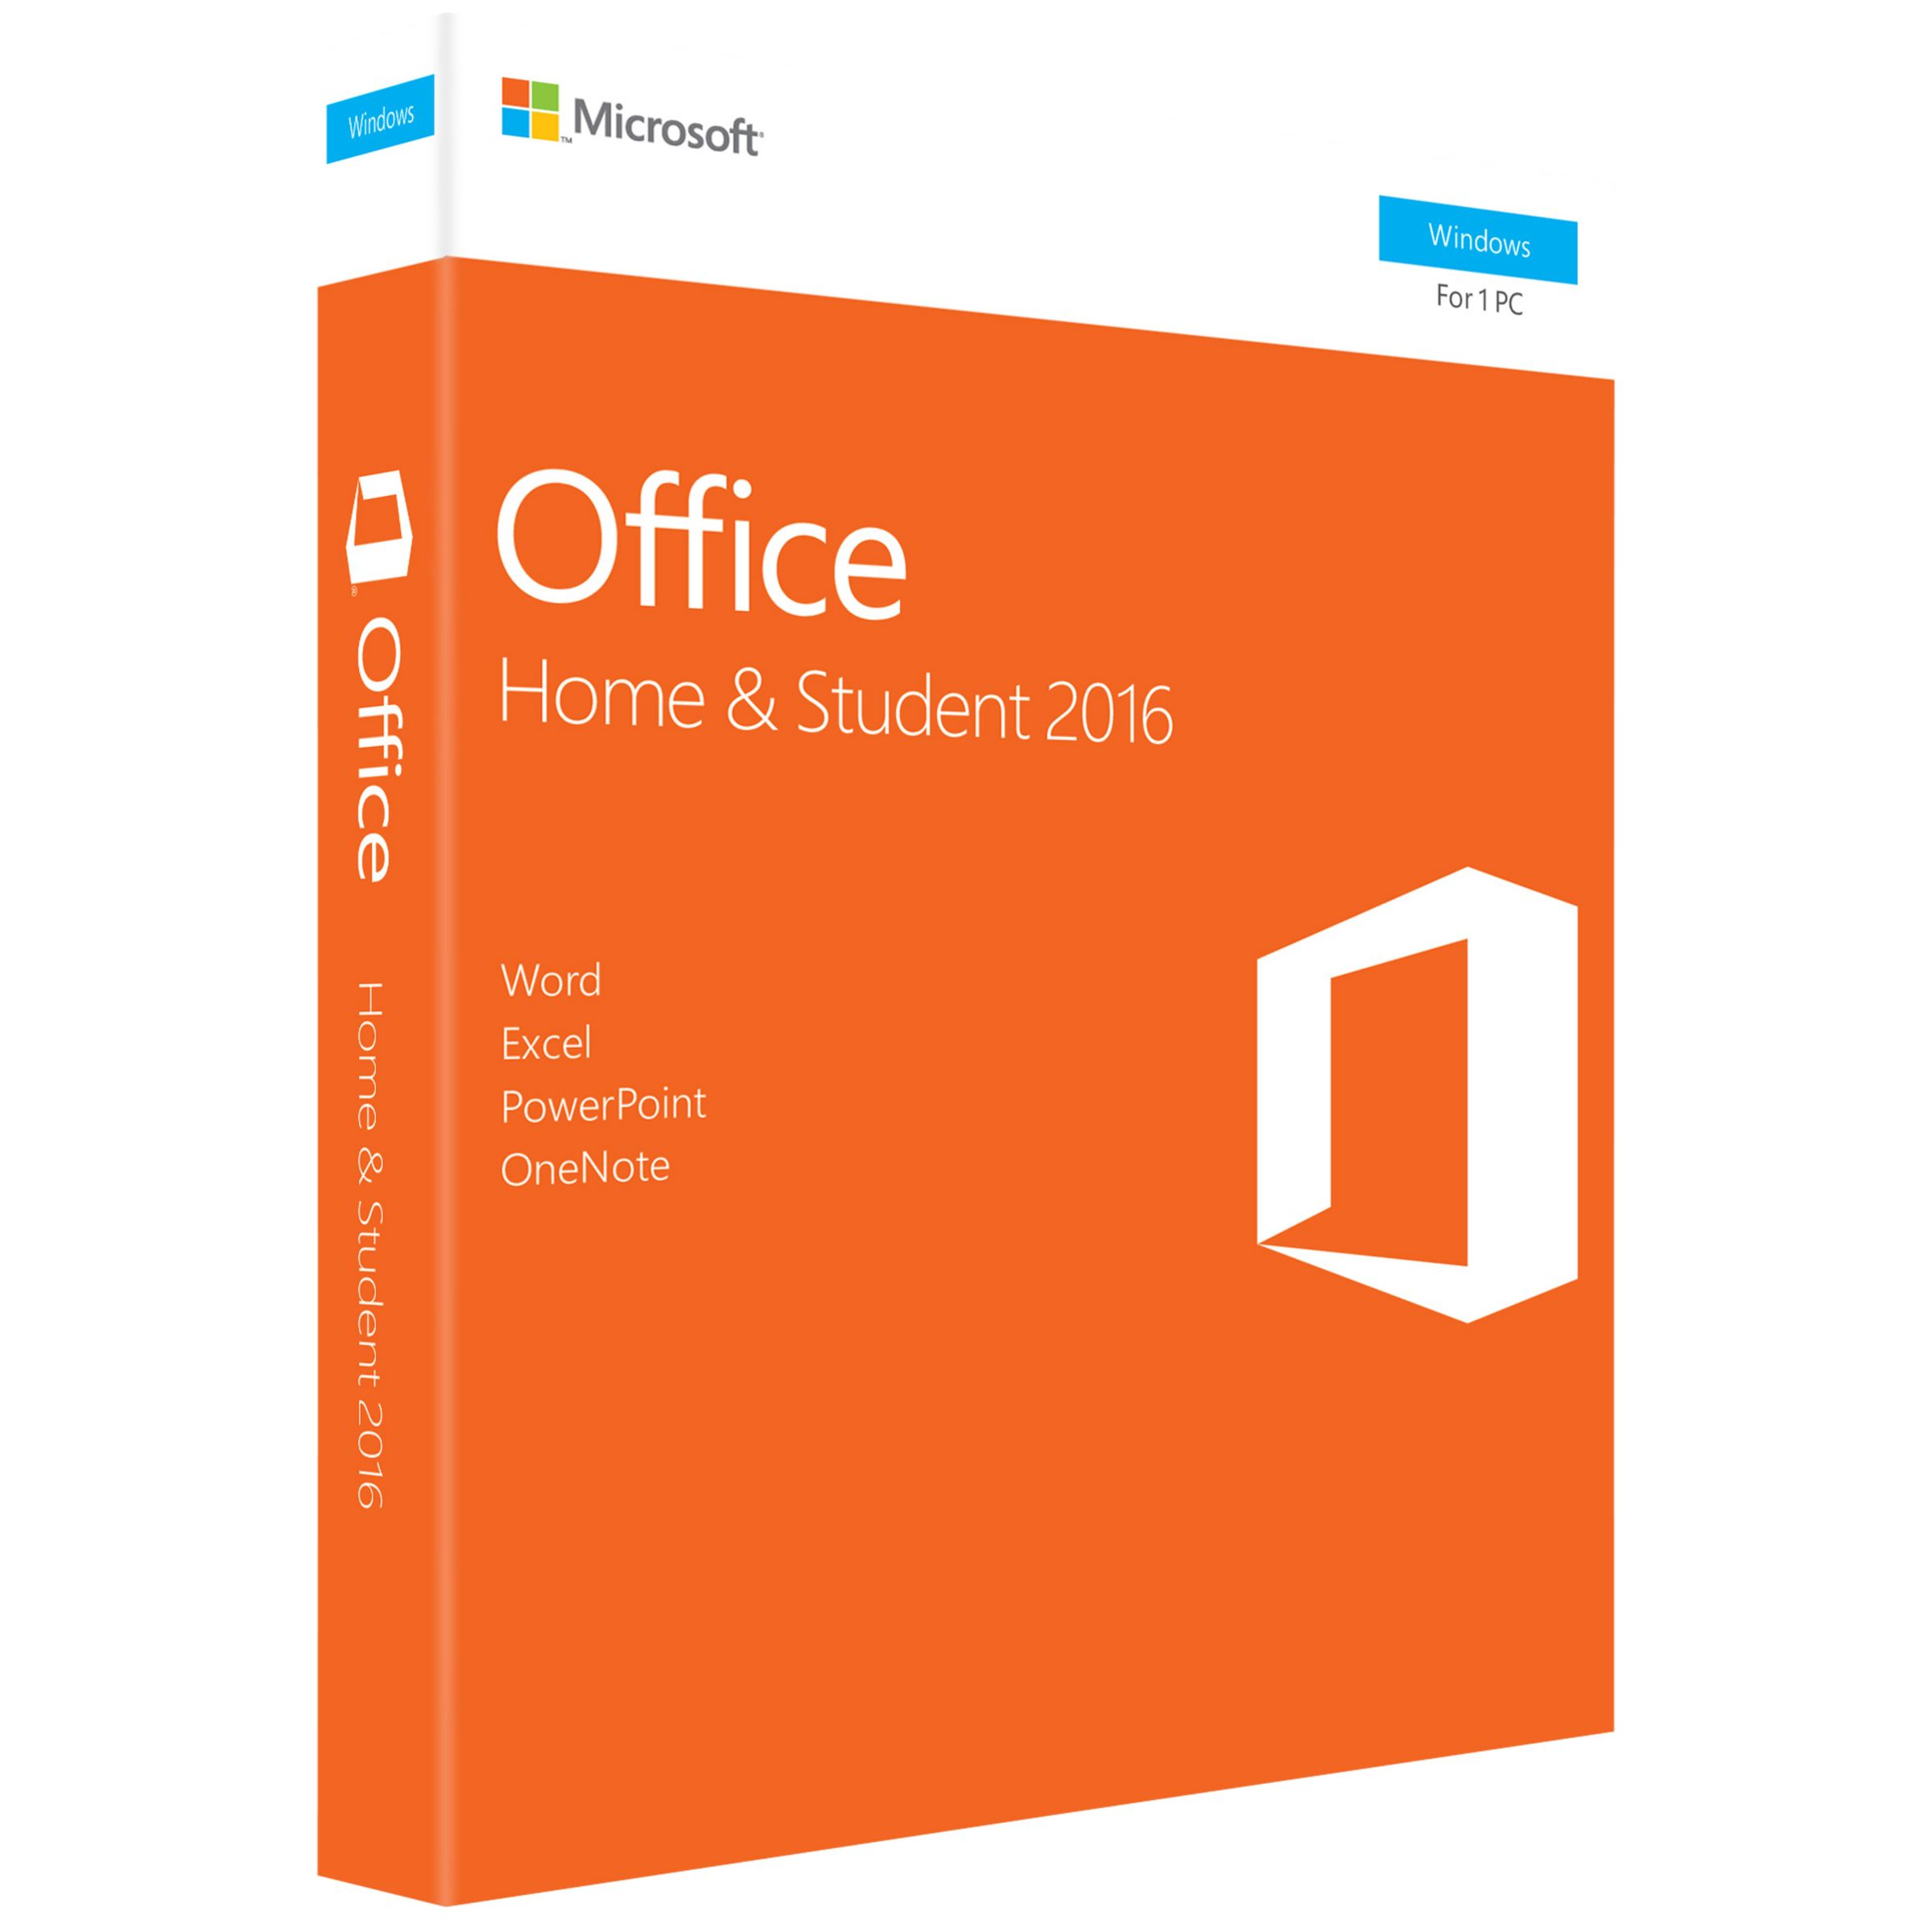 Microsoft Microsoft Office Home and Student 2016, 1 PC, One-Off Payment